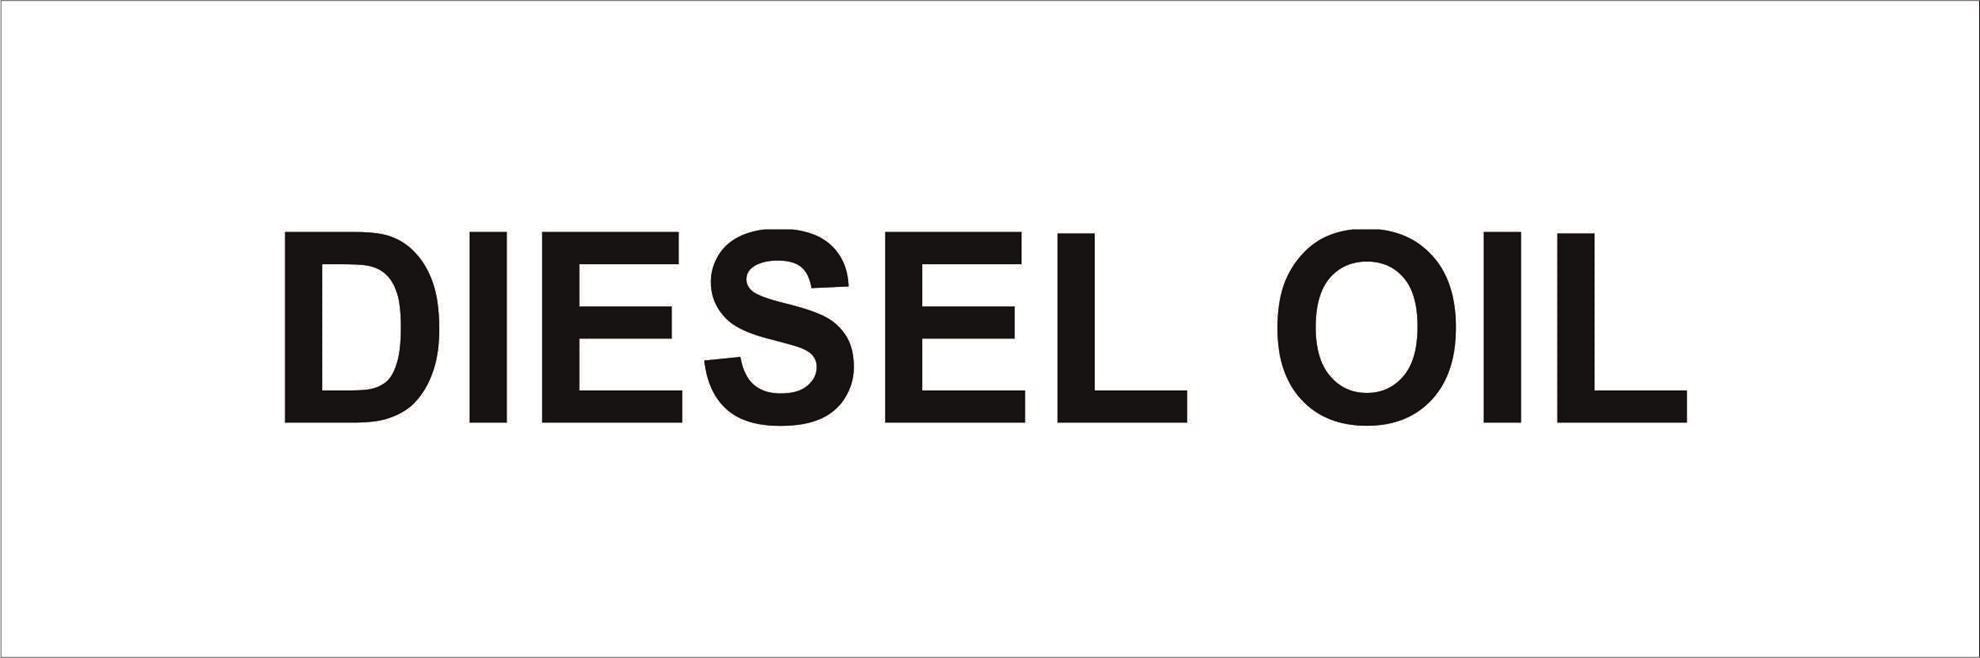 Pipeline Marking Label - DIESEL OIL